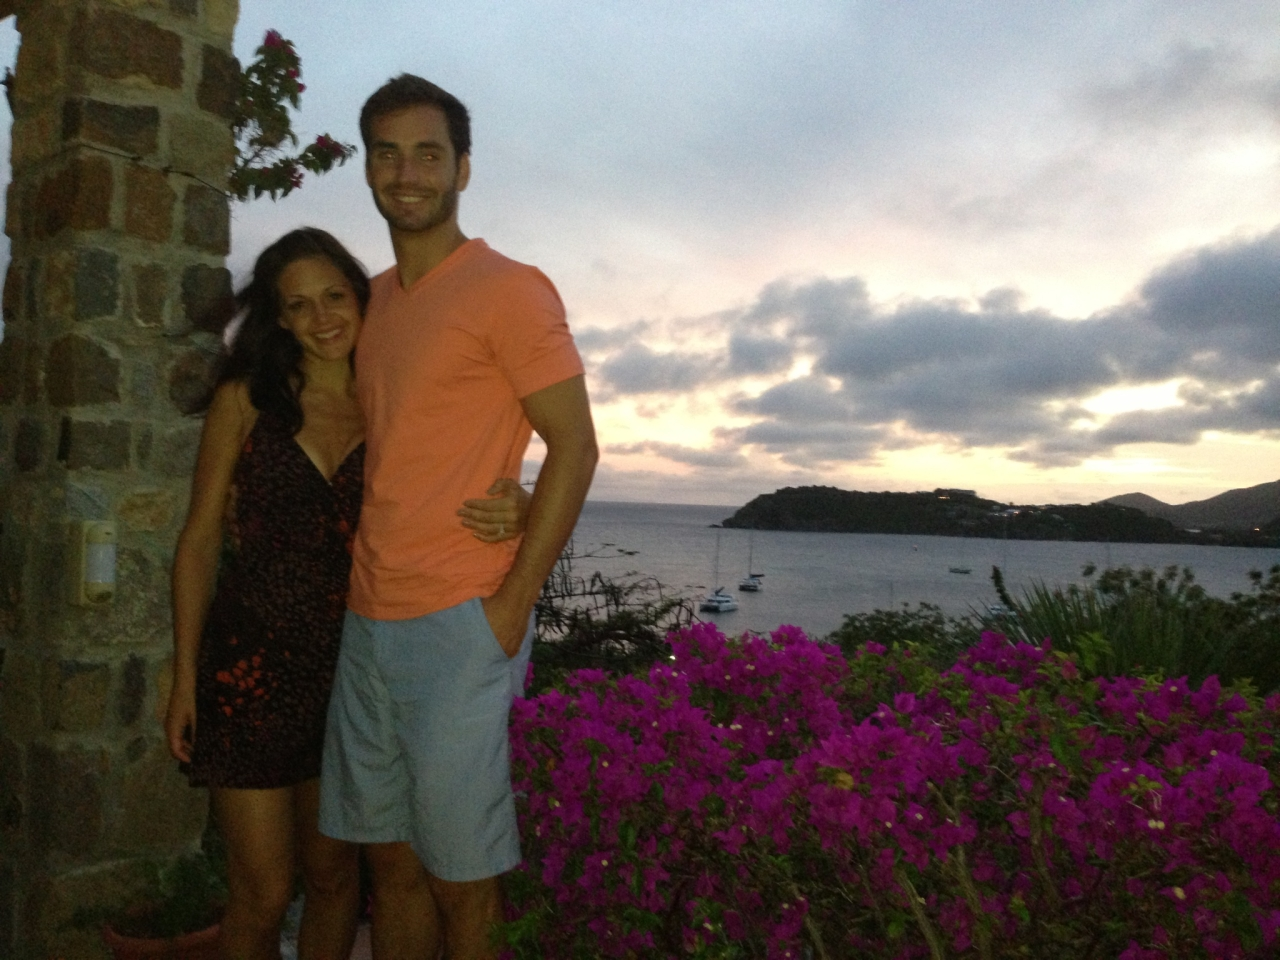 Image 5 of Desiree Hartsock + Chris Seigfried Share Their TV Proposal